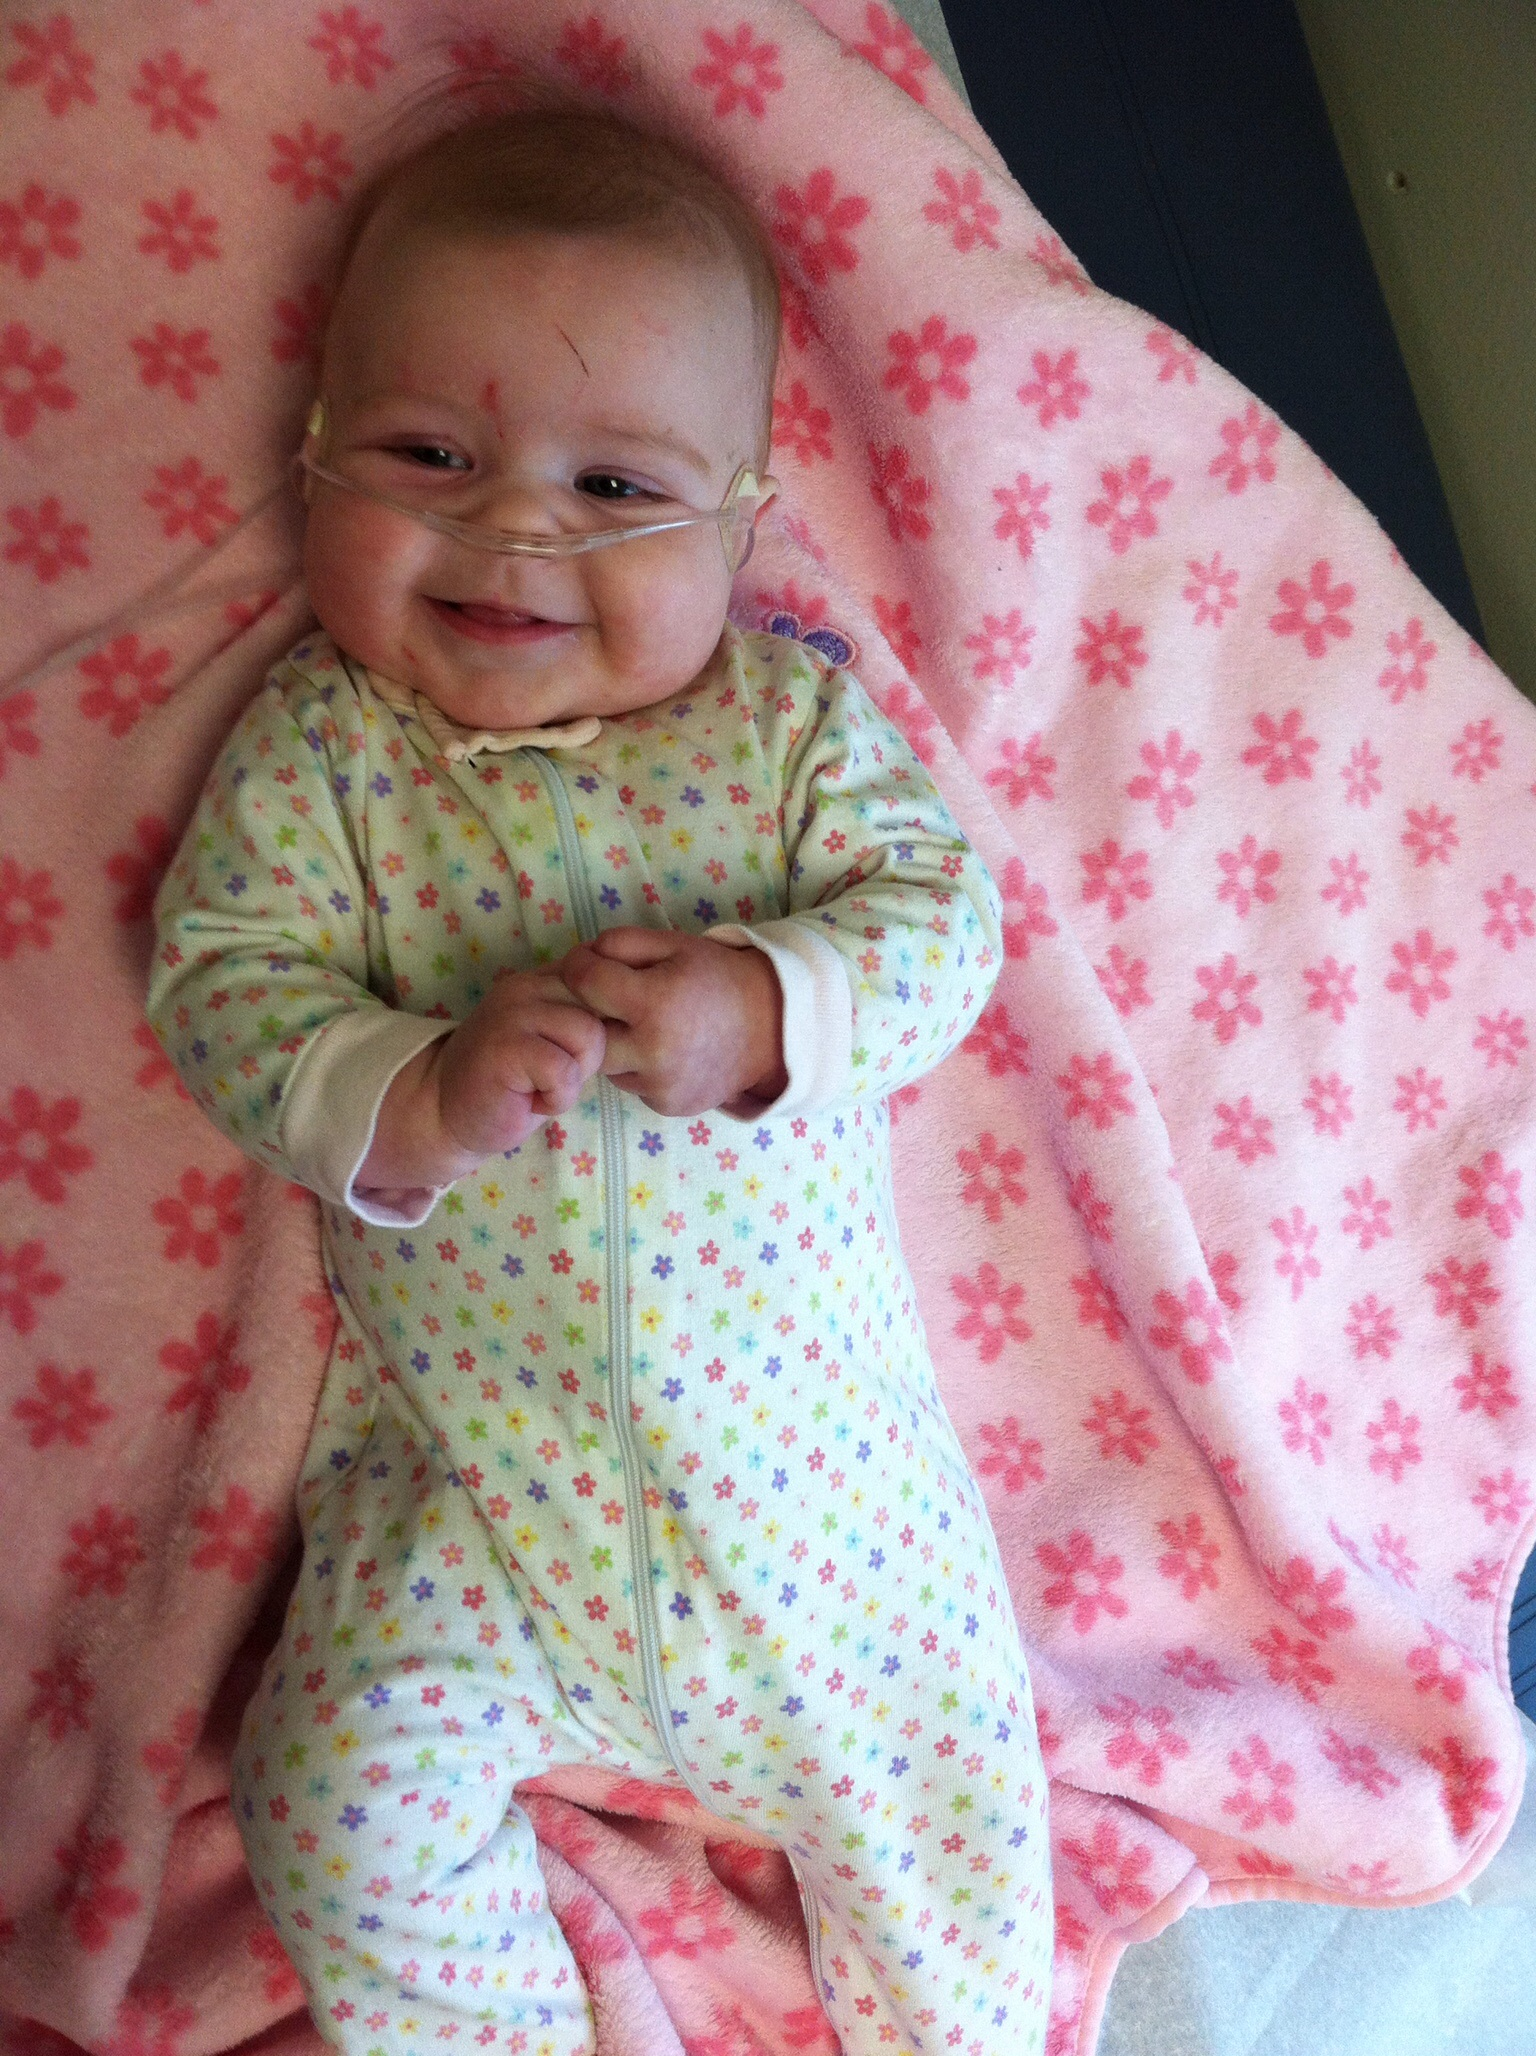 Breanna – miracle update